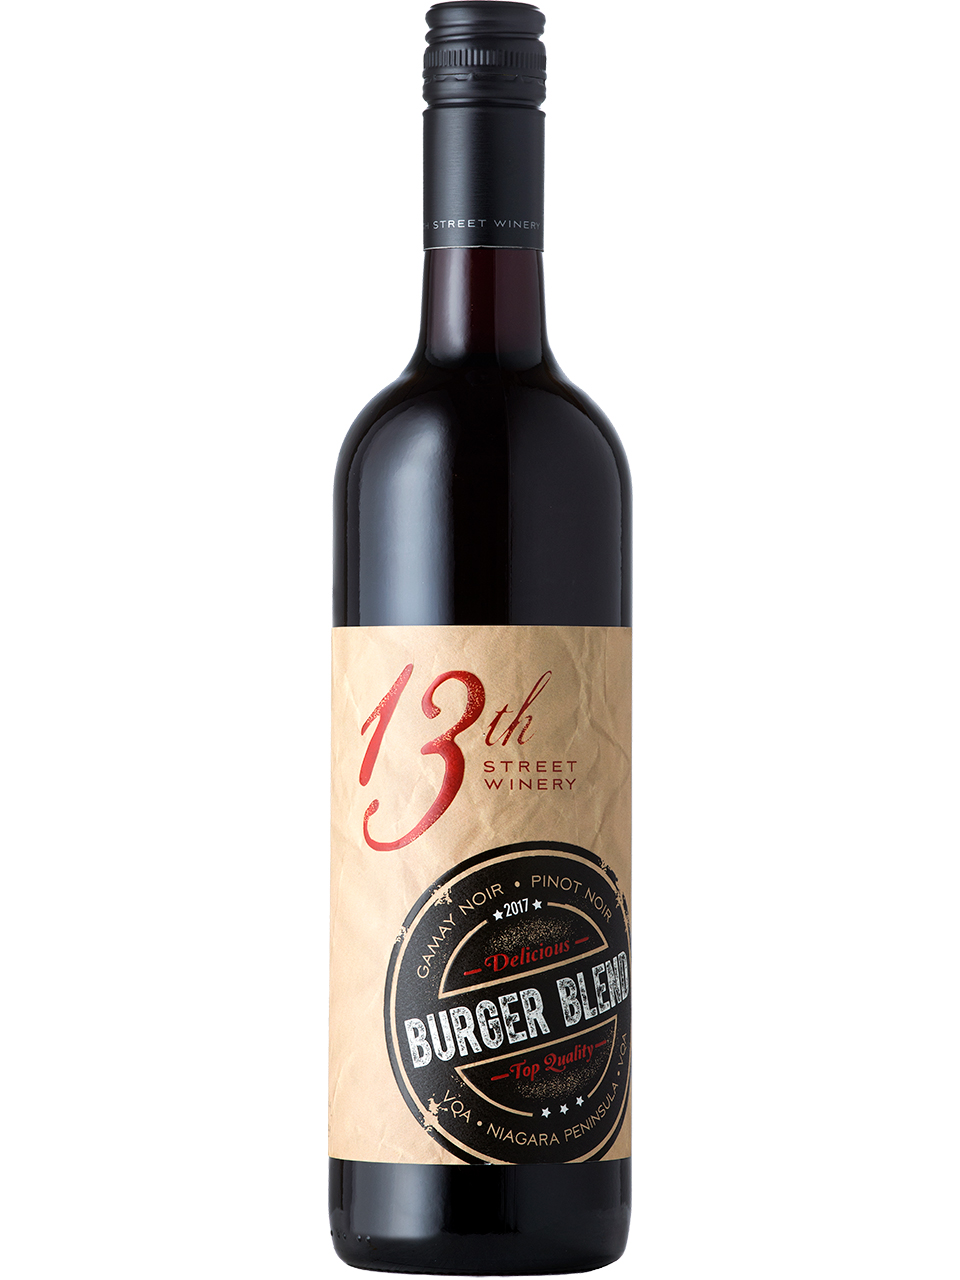 13th Street Winery Burger Blend Red